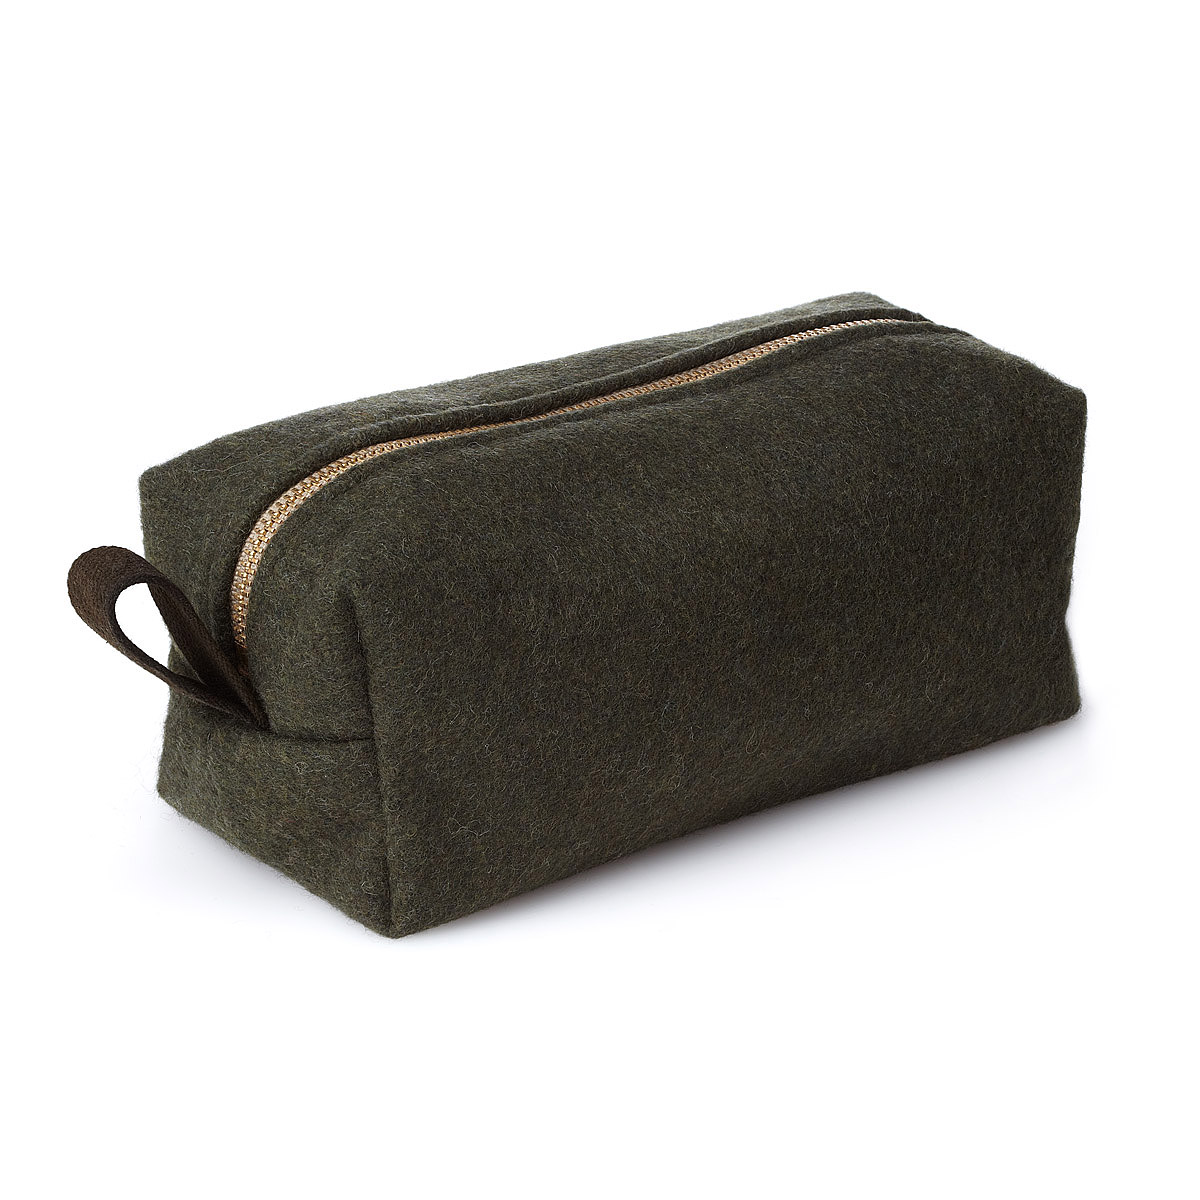 military blanket toiletry bag 1 thumbnail QVZSCFX